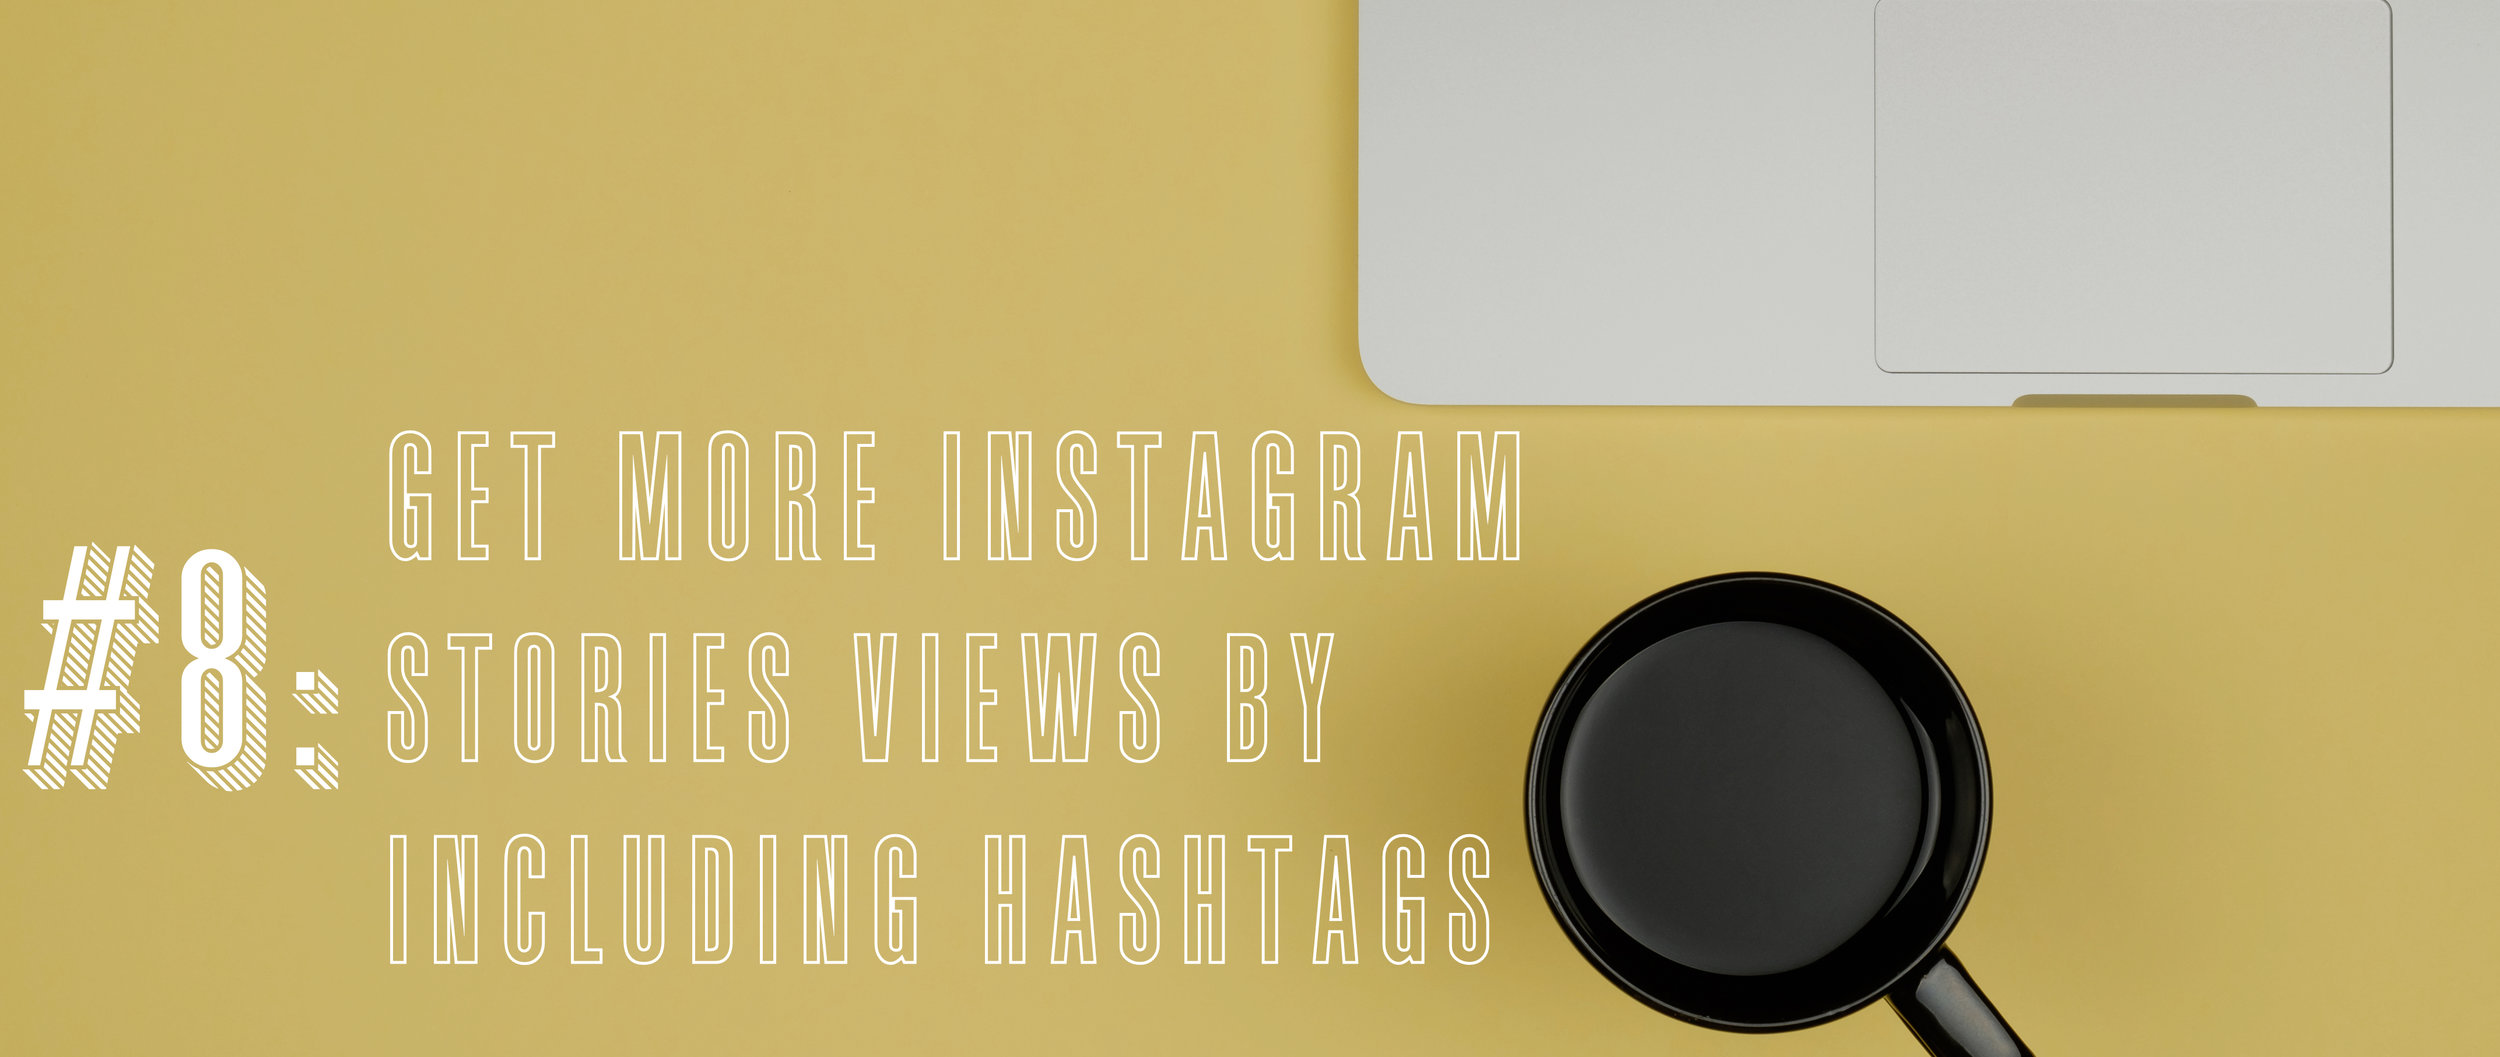 8 Get More Instagram Stories Views by Including Hashtags.jpg